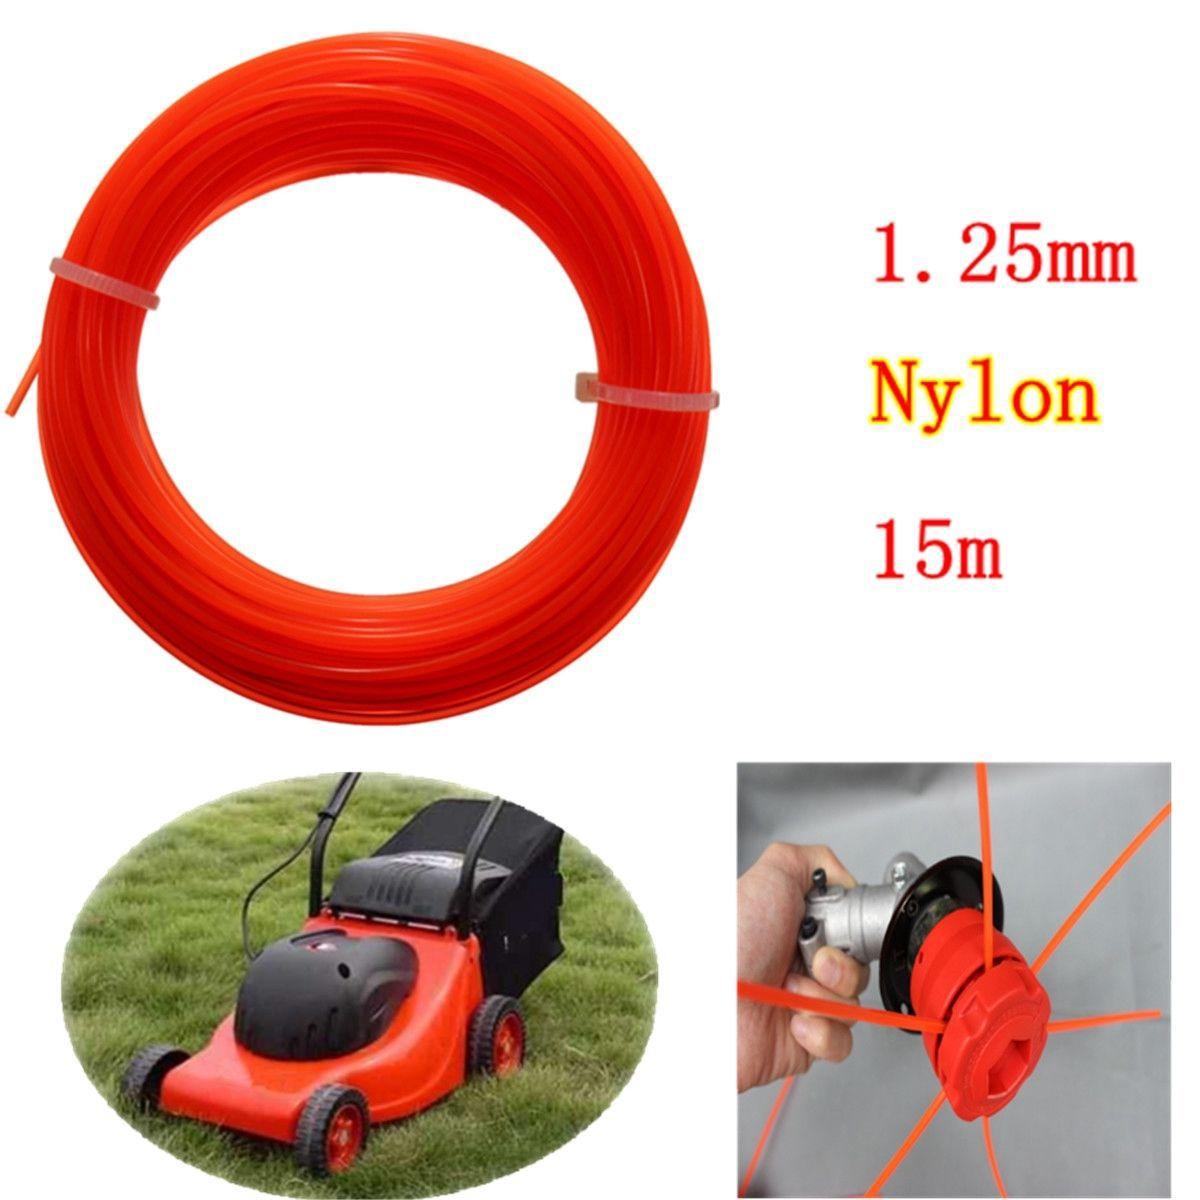 New Nylon Trimmer Line Rope Roll For Most Petrol Strimmers Machine Lawn Mover Parts 15m x